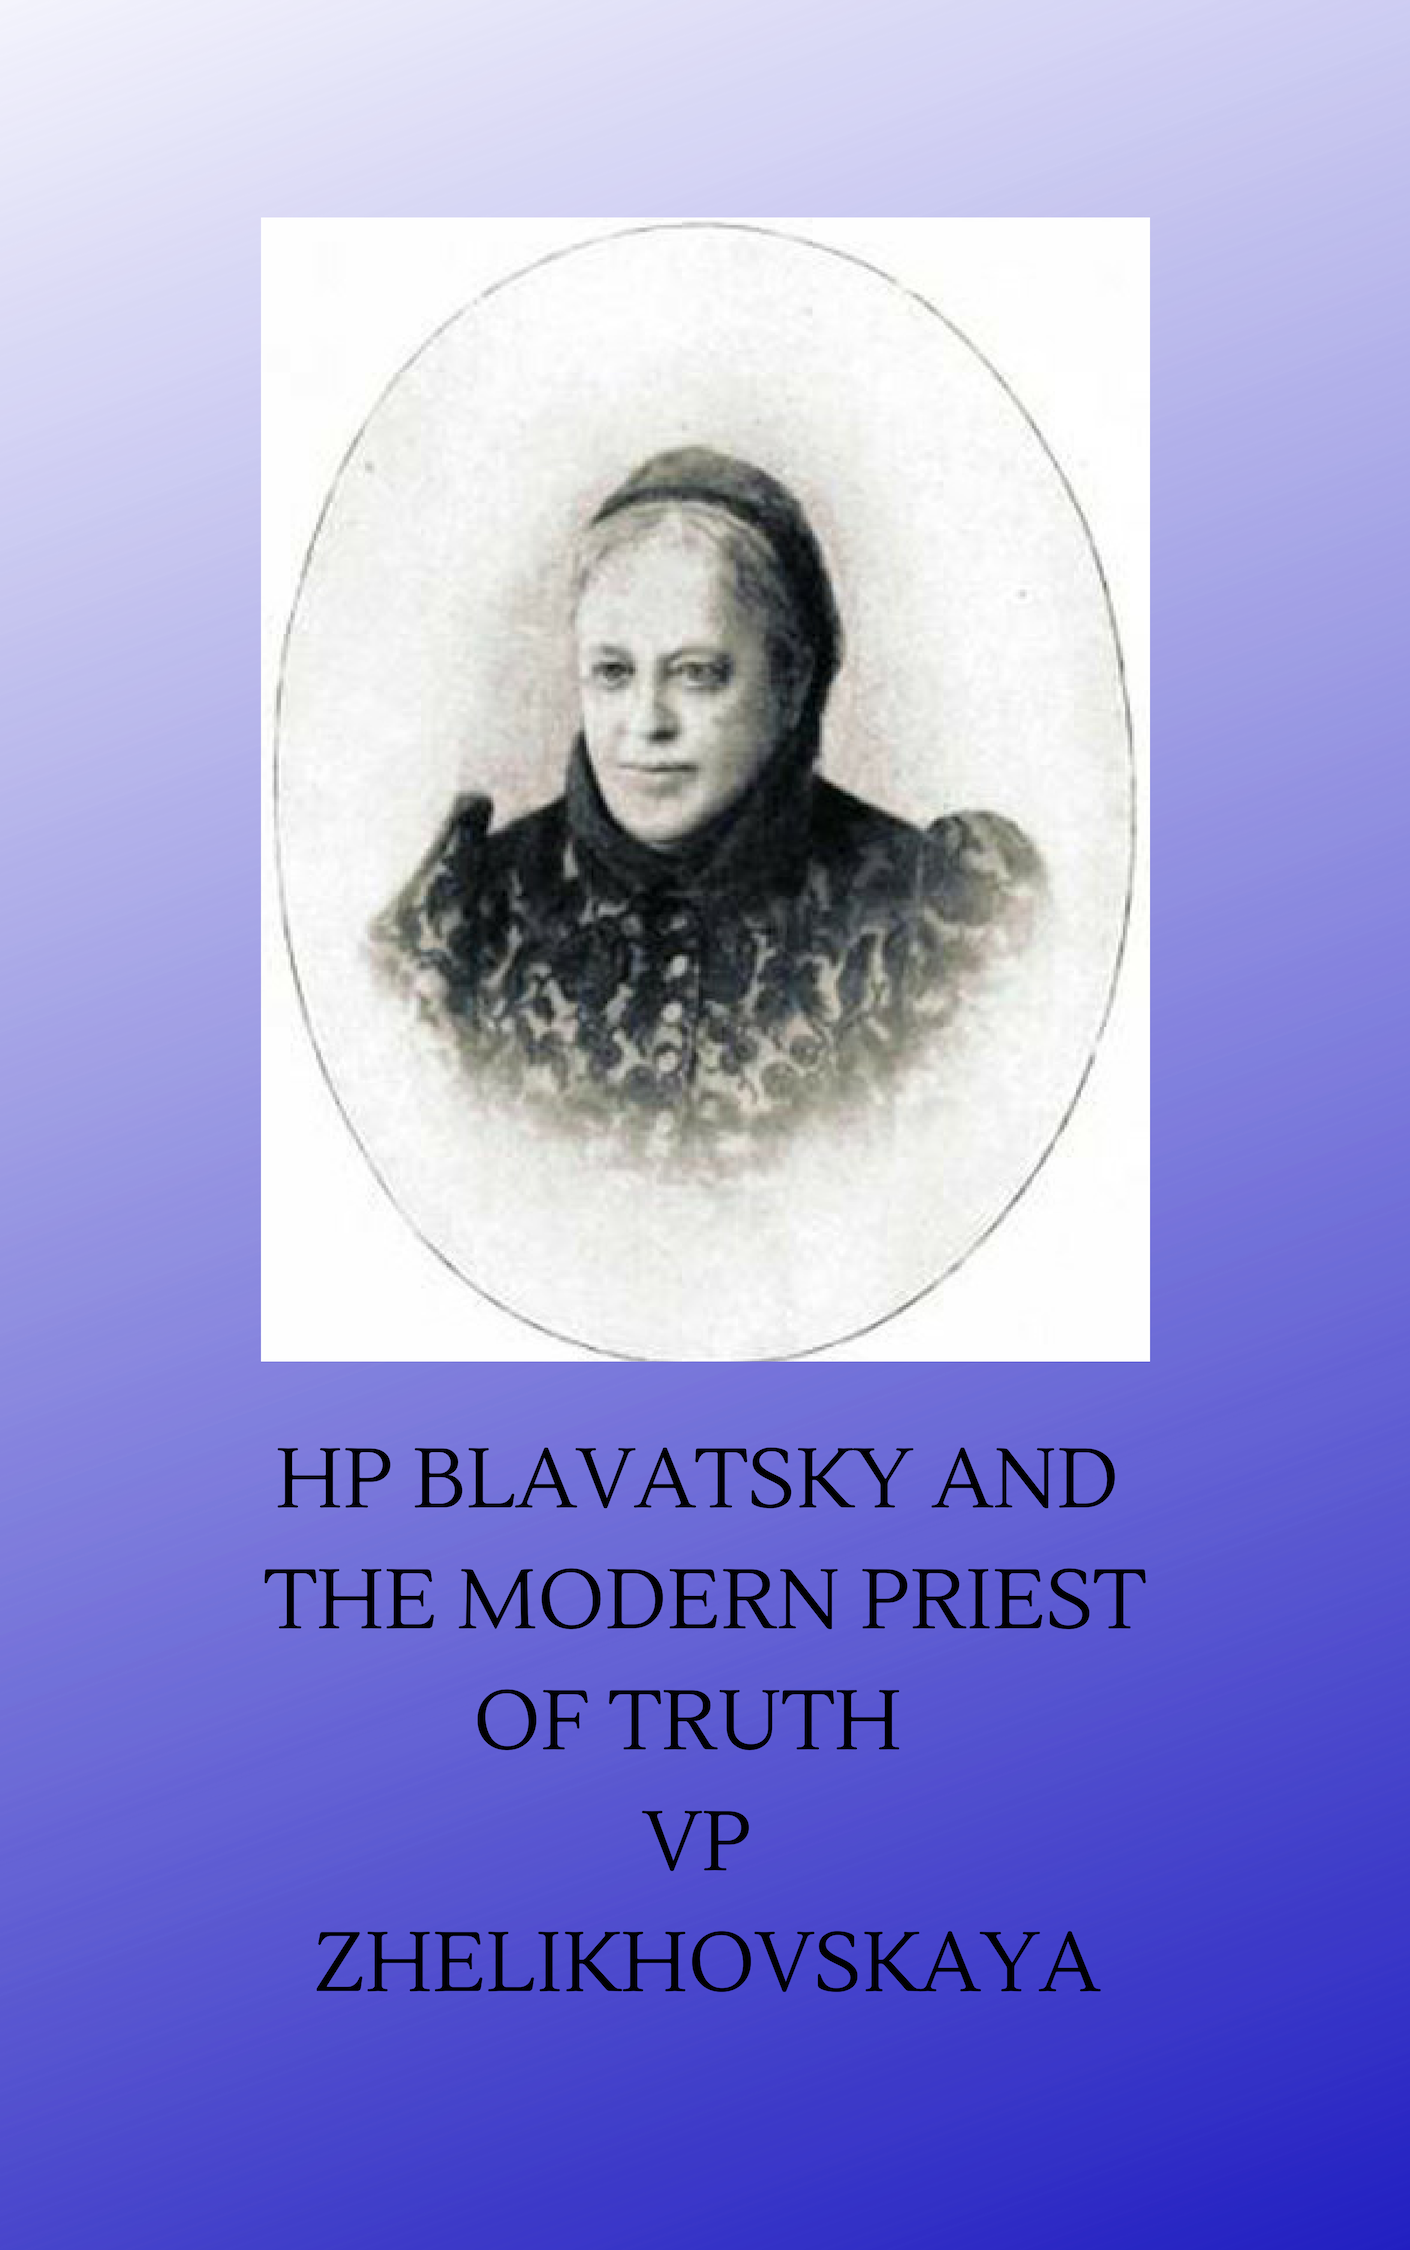 Blavatsky and the Modern Priest of Truth: Reply of V.P. Zhelikhovskaya to Vs. Solovyov Ch.8-14